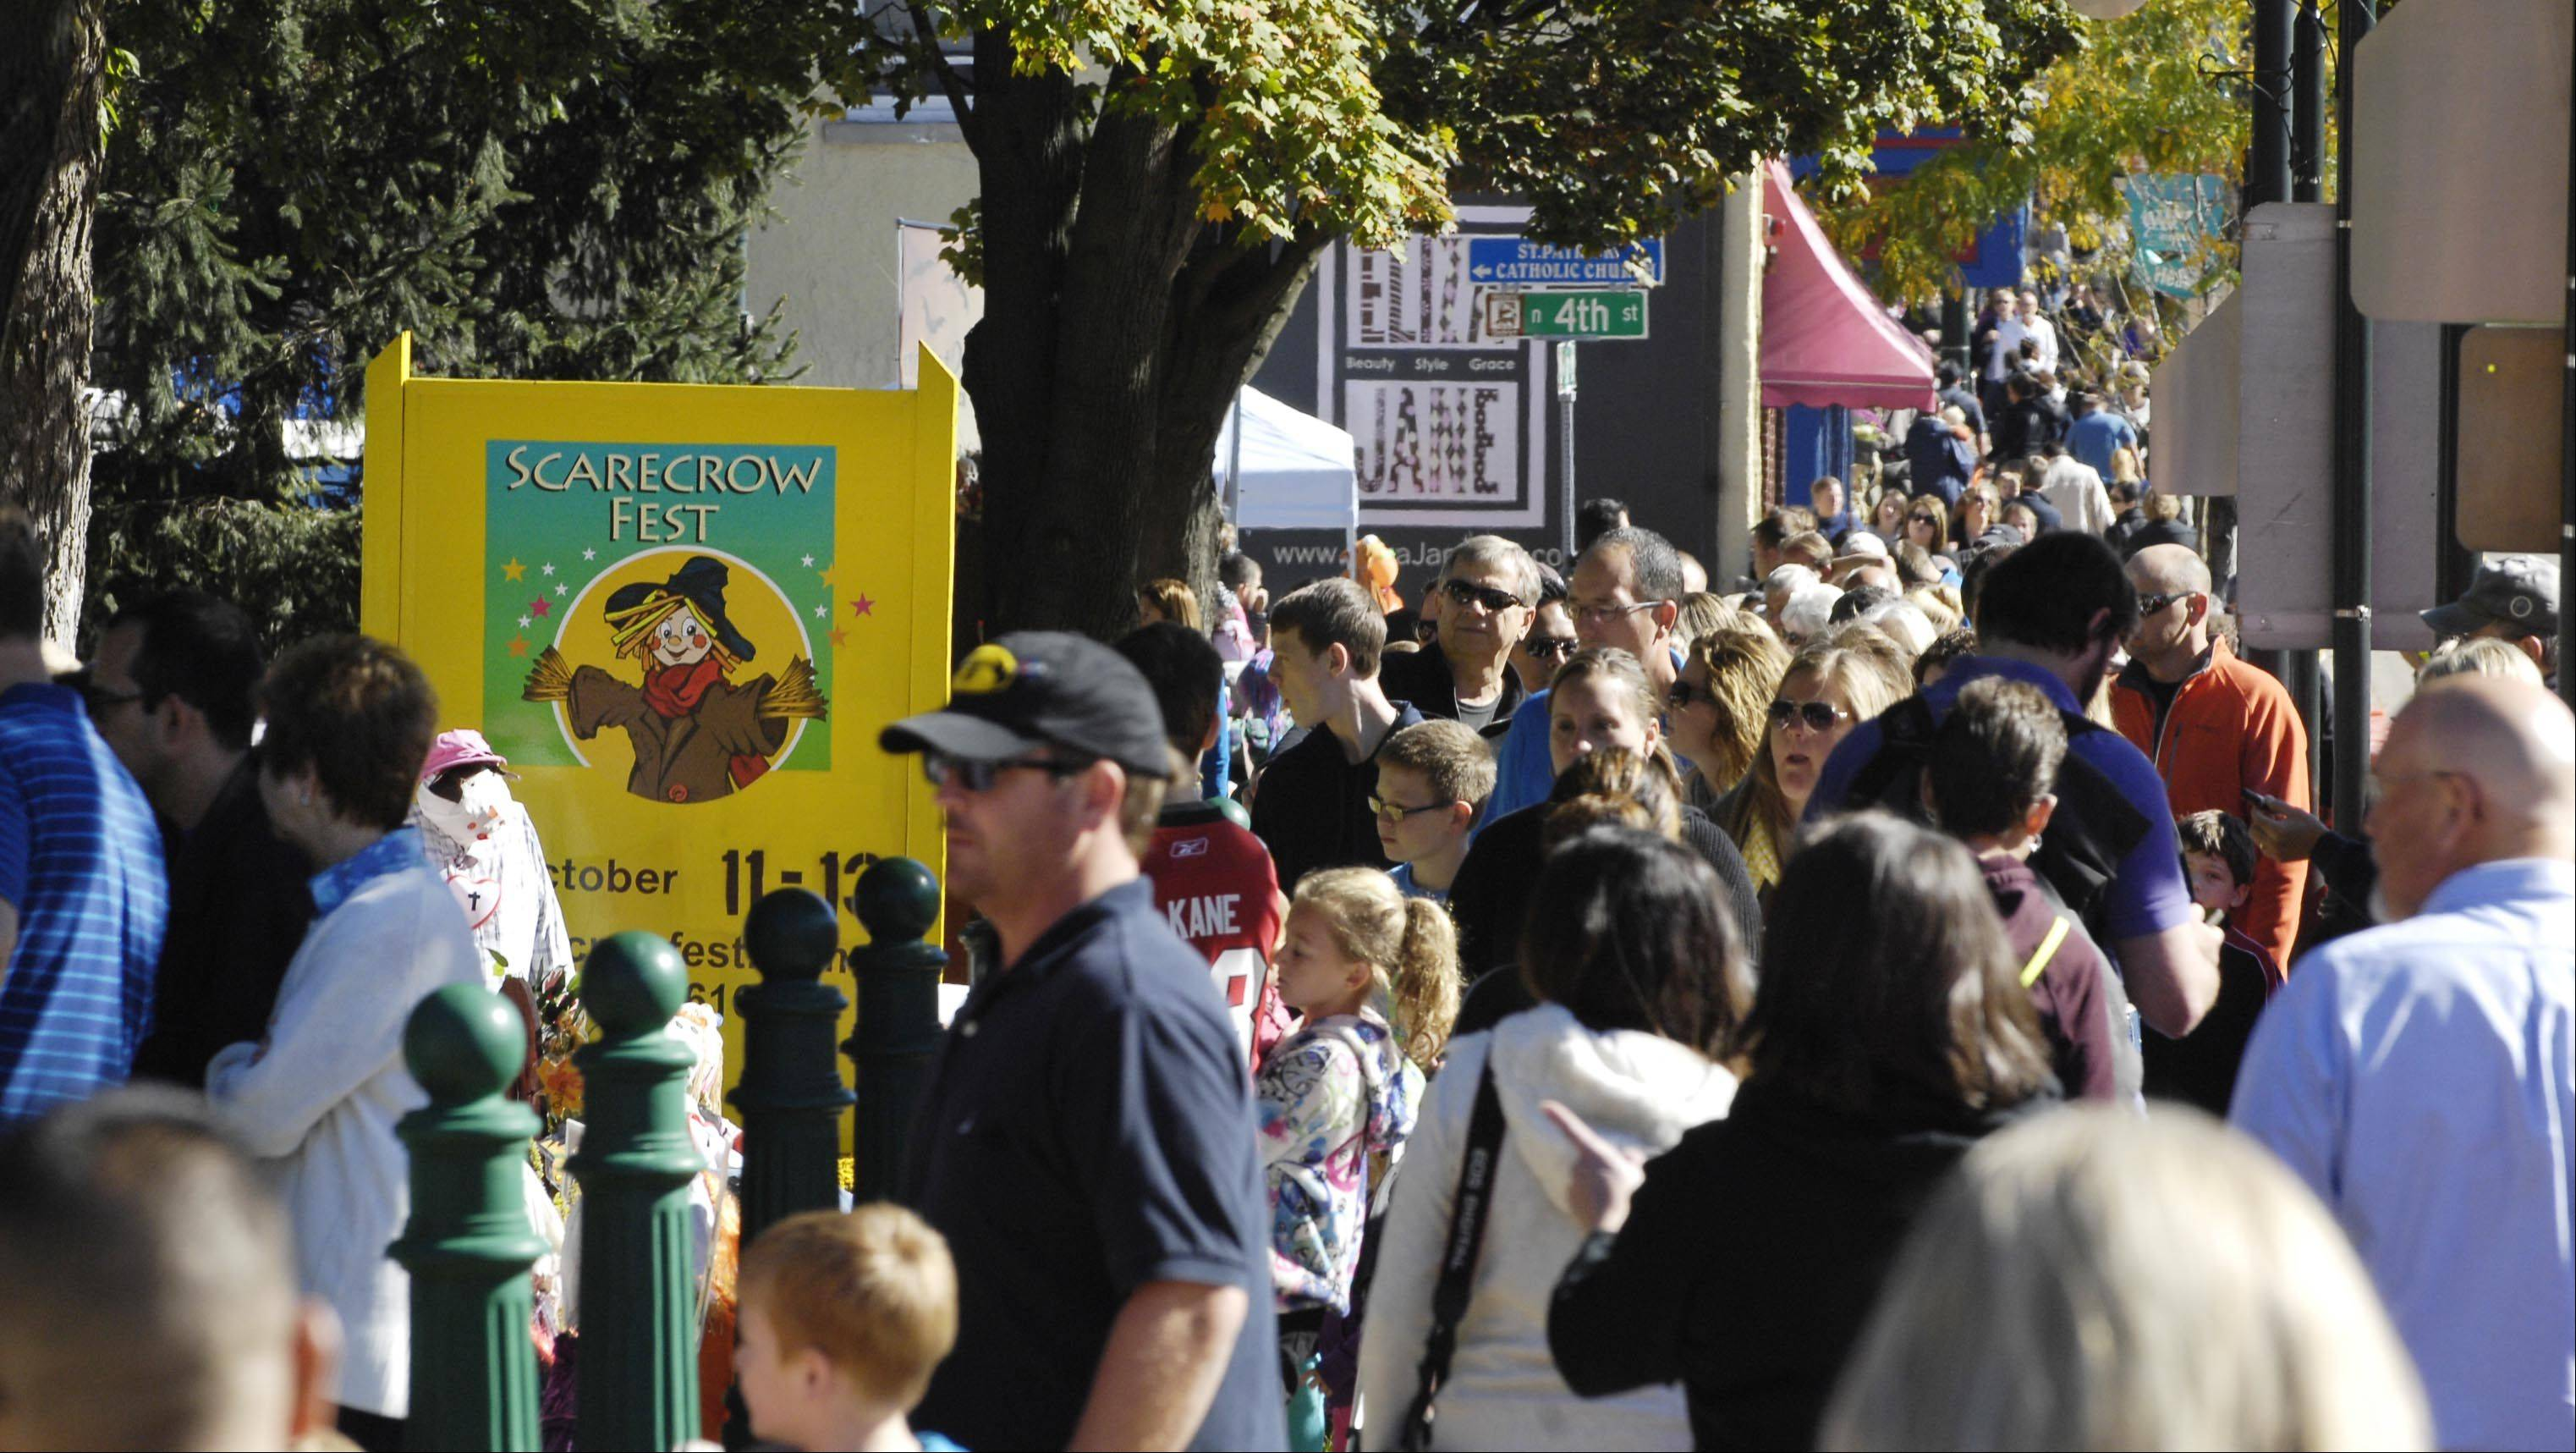 Sidewalks were crowded all morning Sunday at the 28th annual St. Charles Scarecrow Festival.